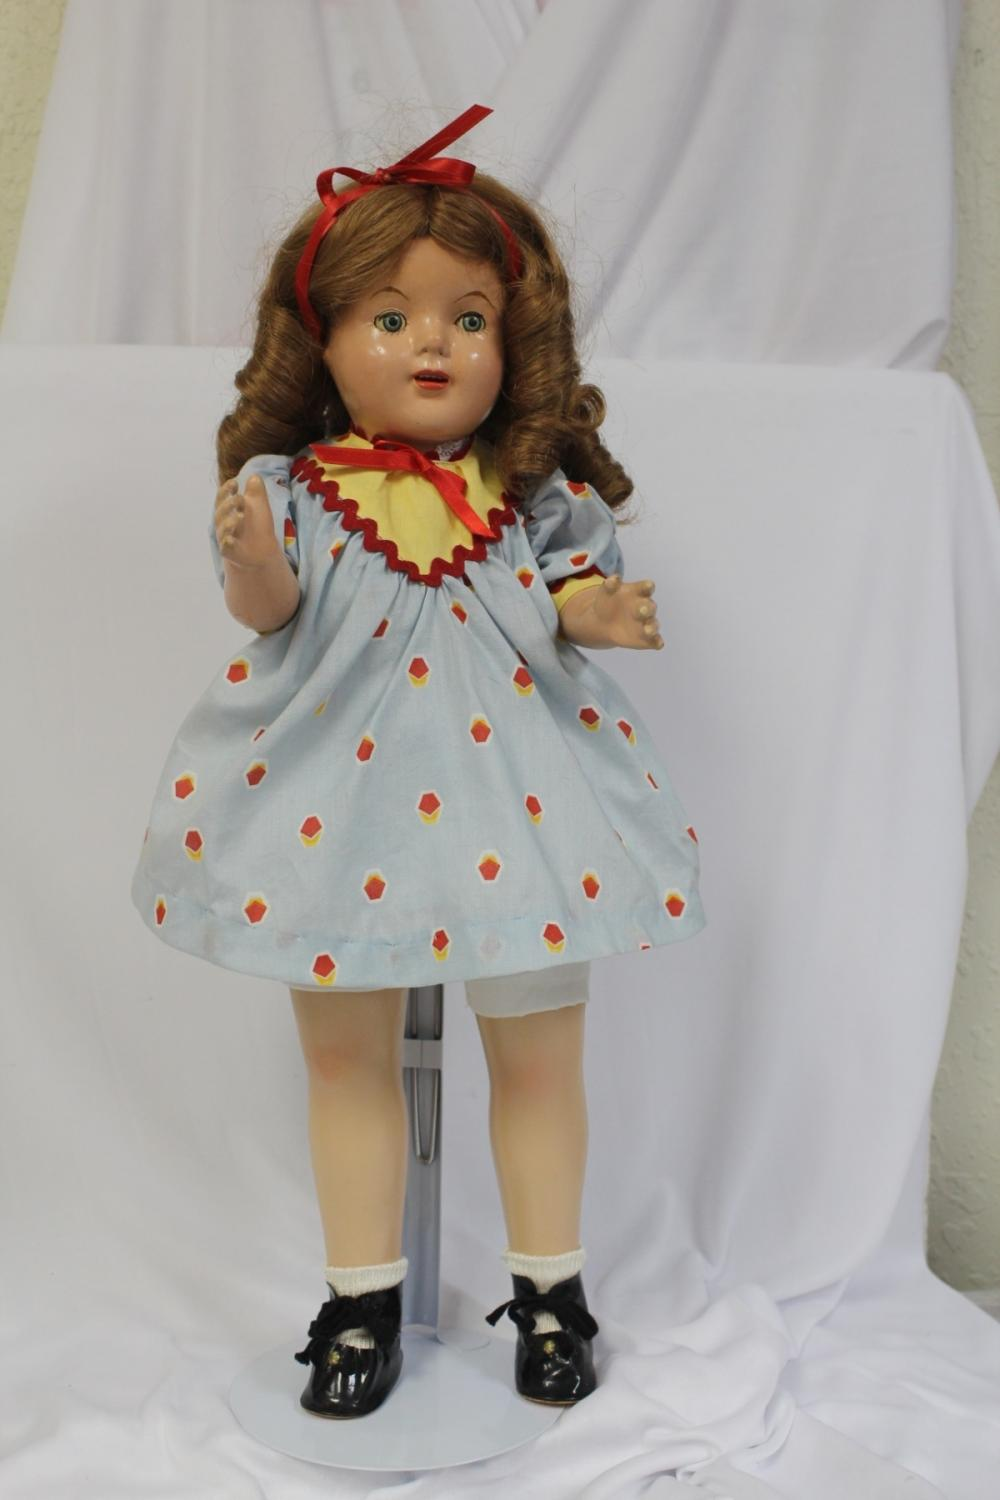 A Shirley Temple-Style Doll